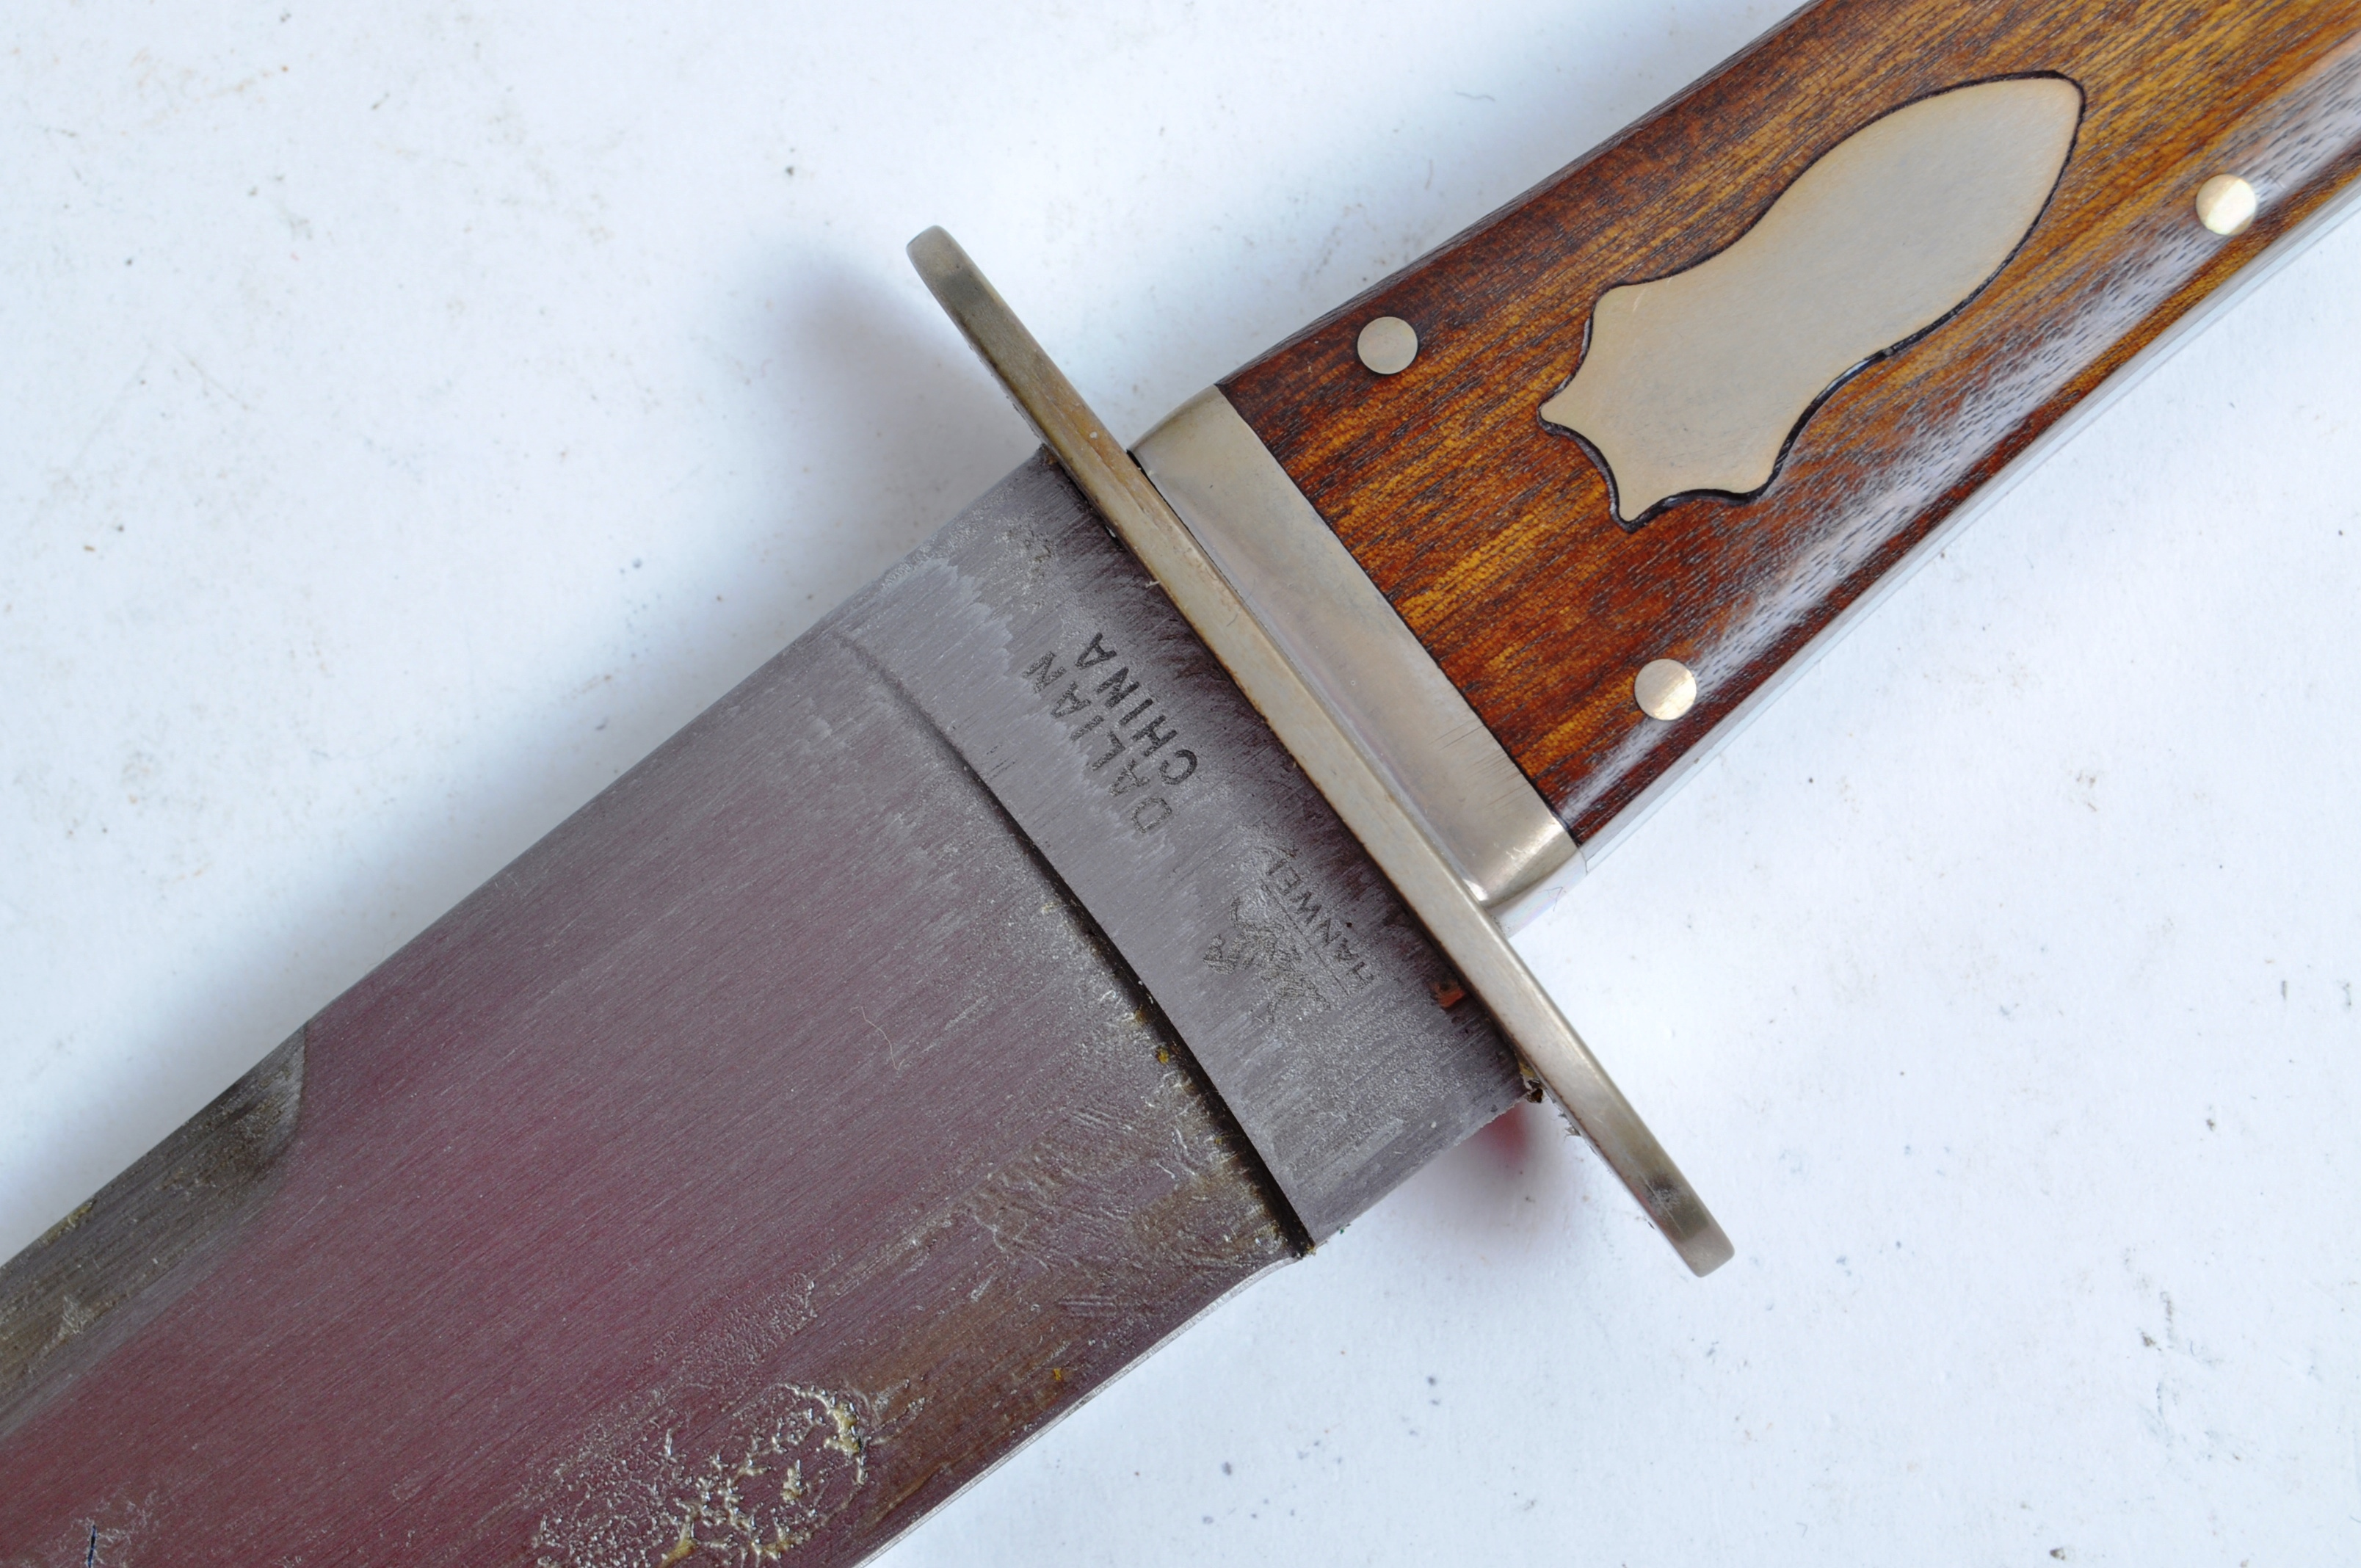 20TH CENTURY PAUL CHEN / HANWEI MADE BOWIE KNIFE - Image 6 of 12